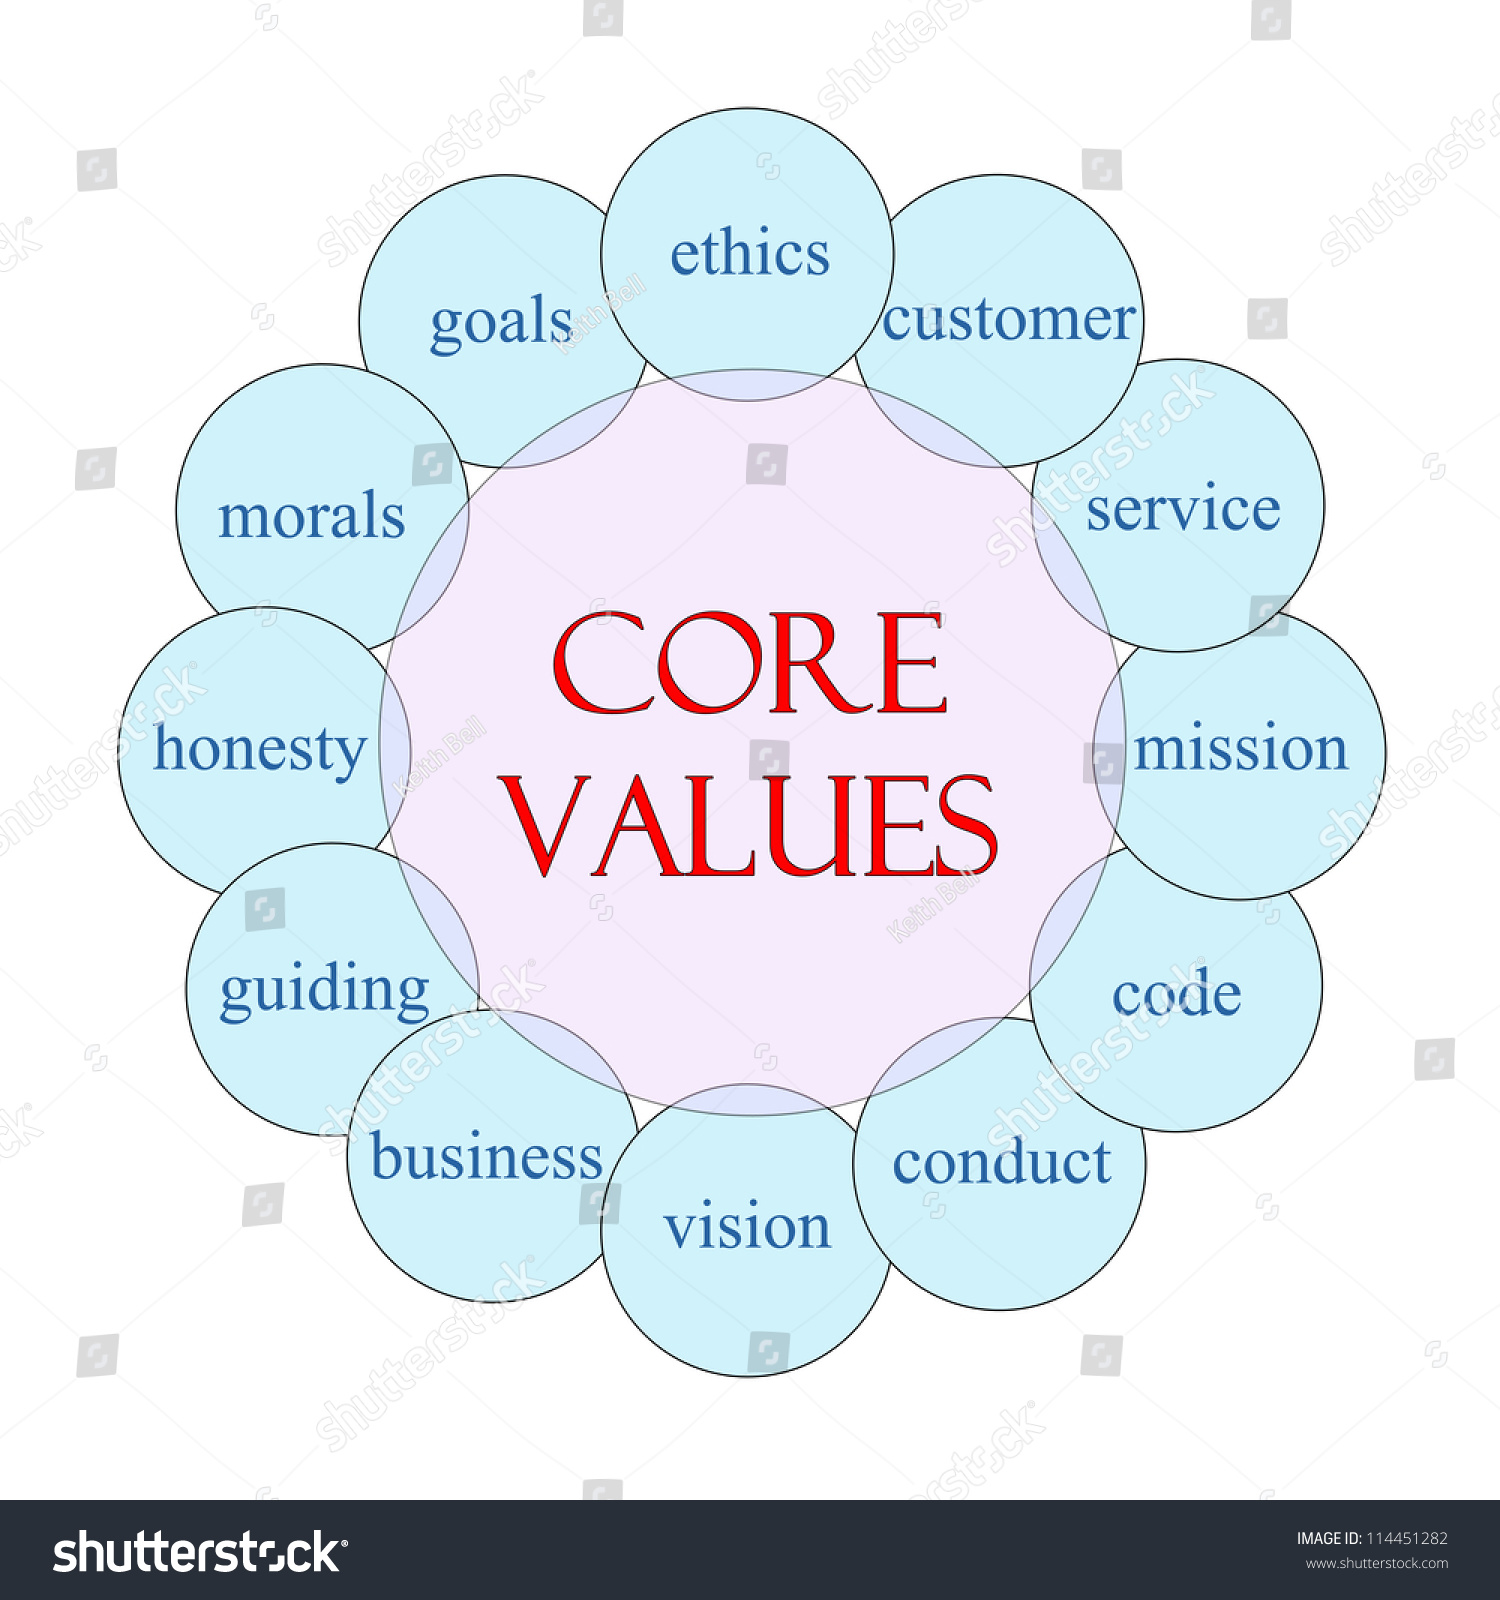 virtues values and moral concepts Eth 316 week 1 discussion question 3 for more classes visit wwweth316nerdcom what are examples of virtues, values, and moral concepts how do each of these relate.